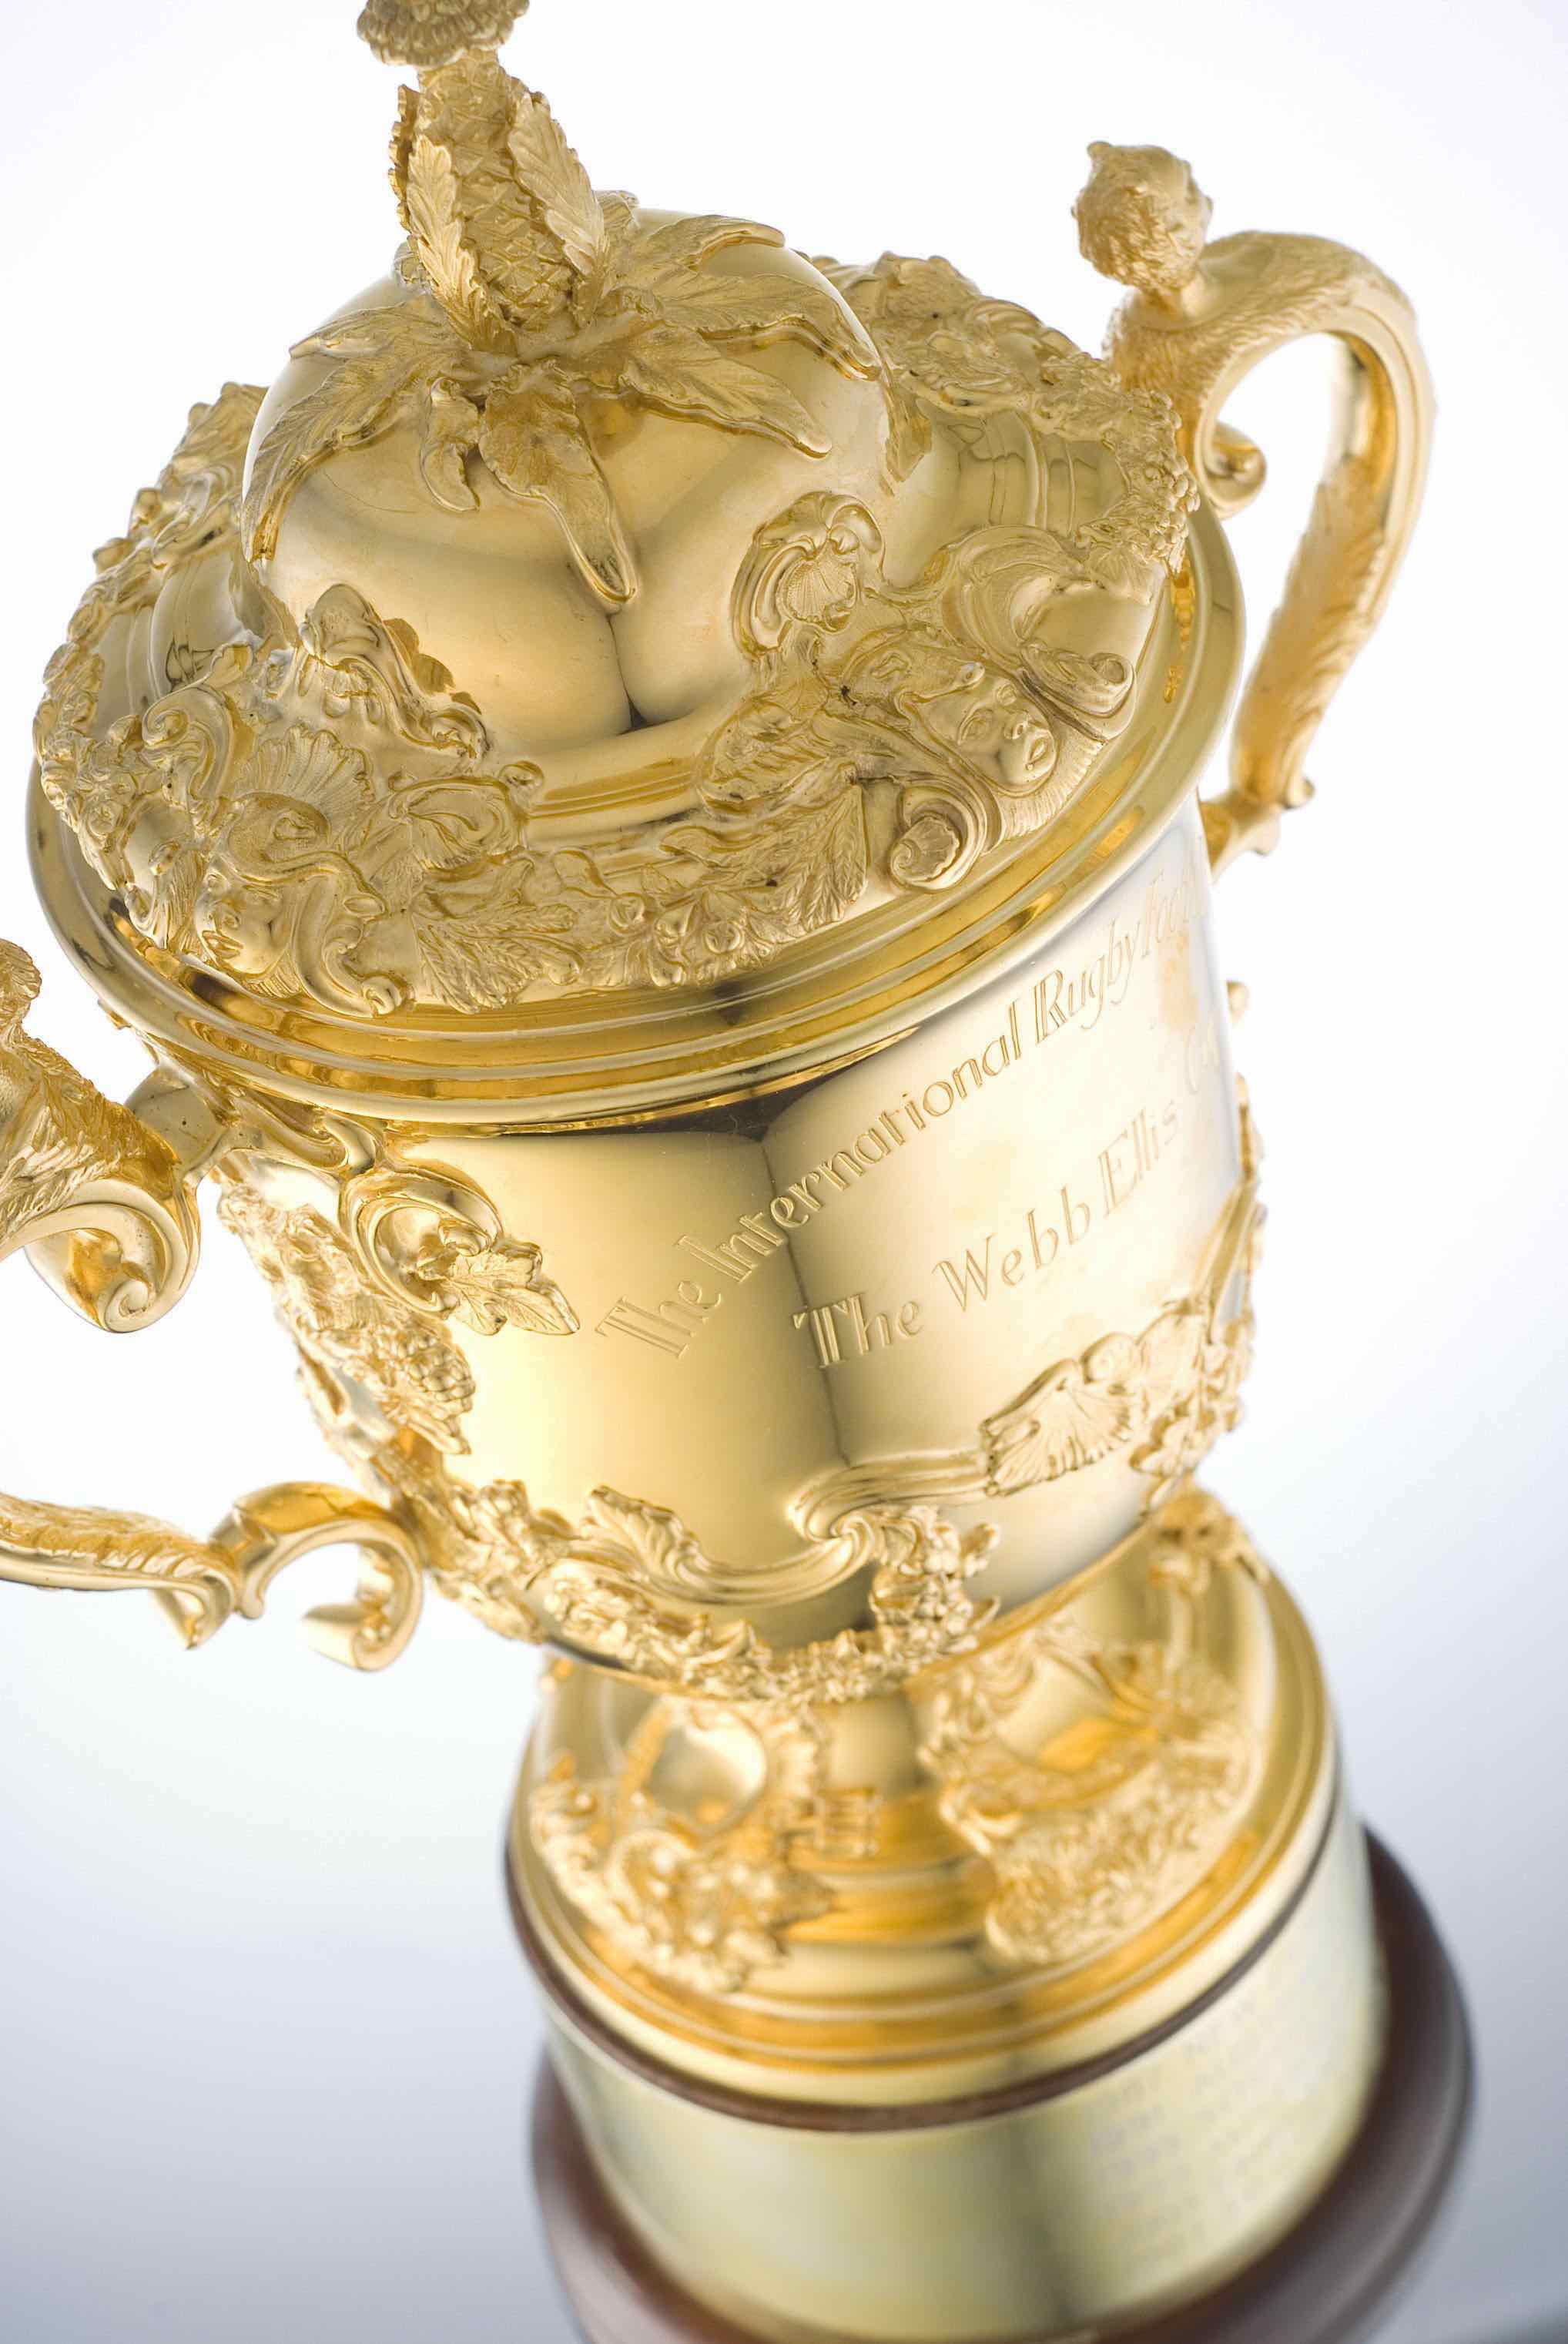 The Web Ellis Cup (credit: World Rugby)